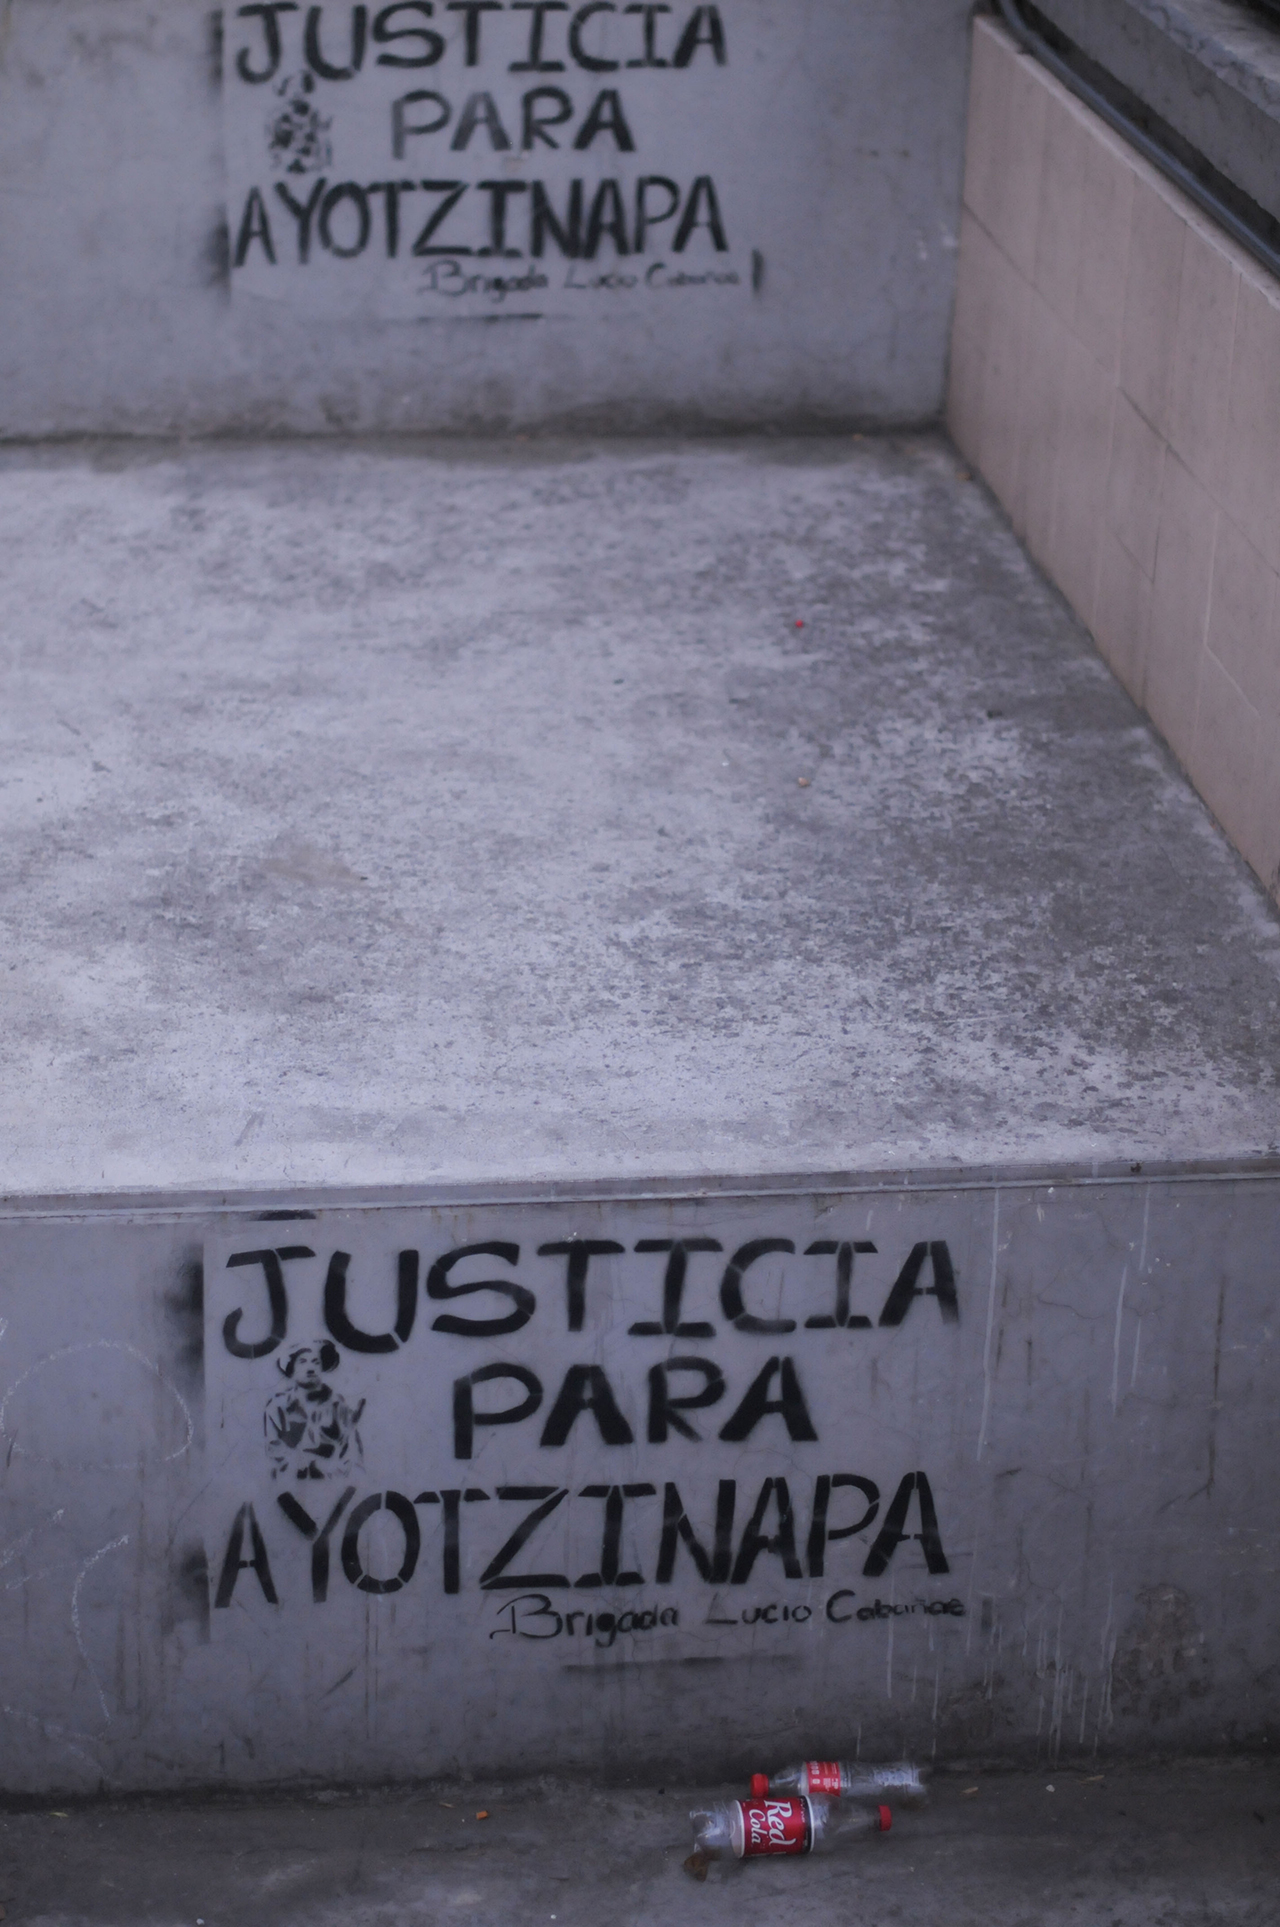 Stencils calling for justice for Ayotzinapa